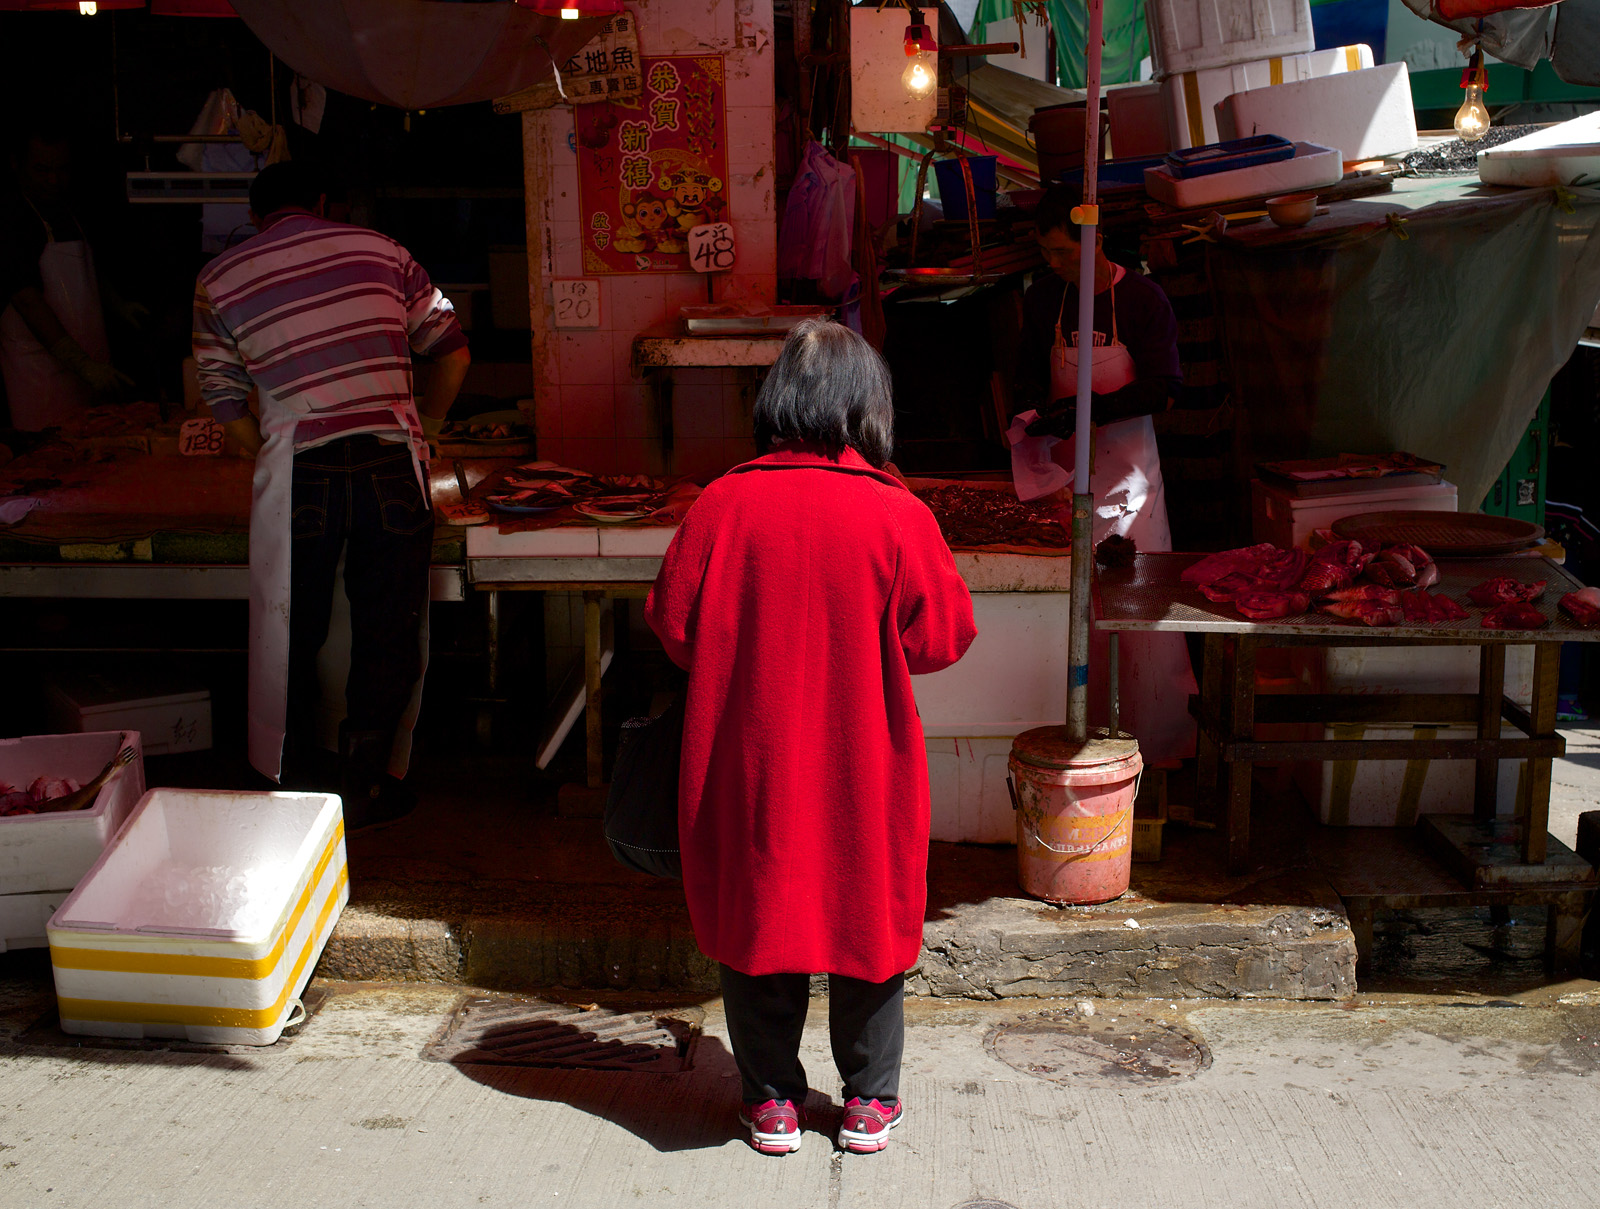 The Urge to Simplify in Street Photography